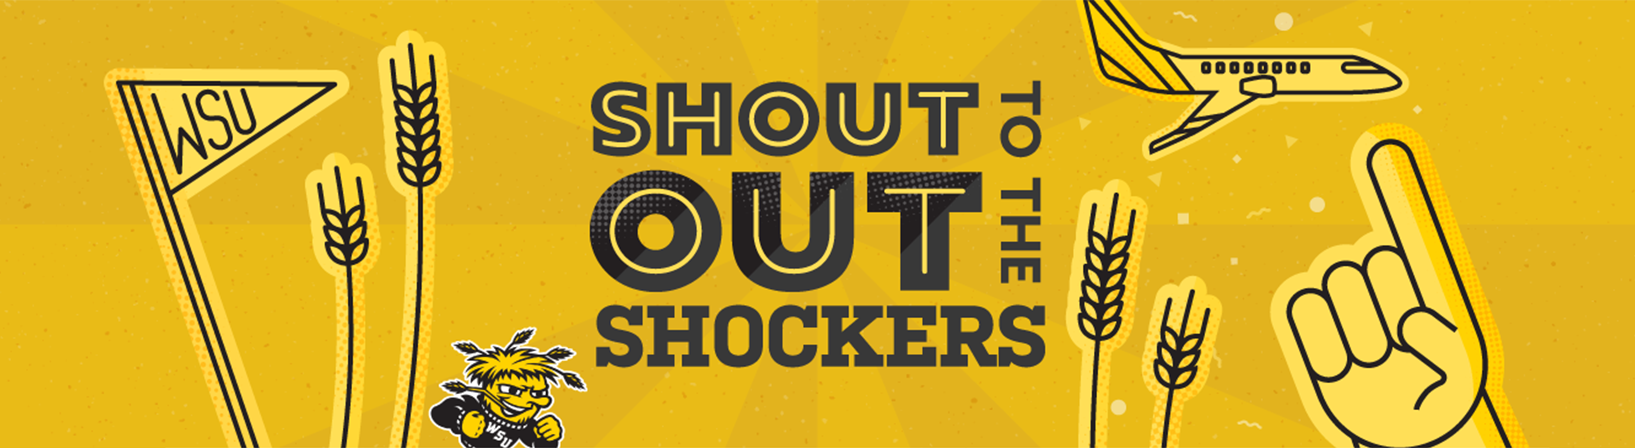 Shout Out to the Shockers